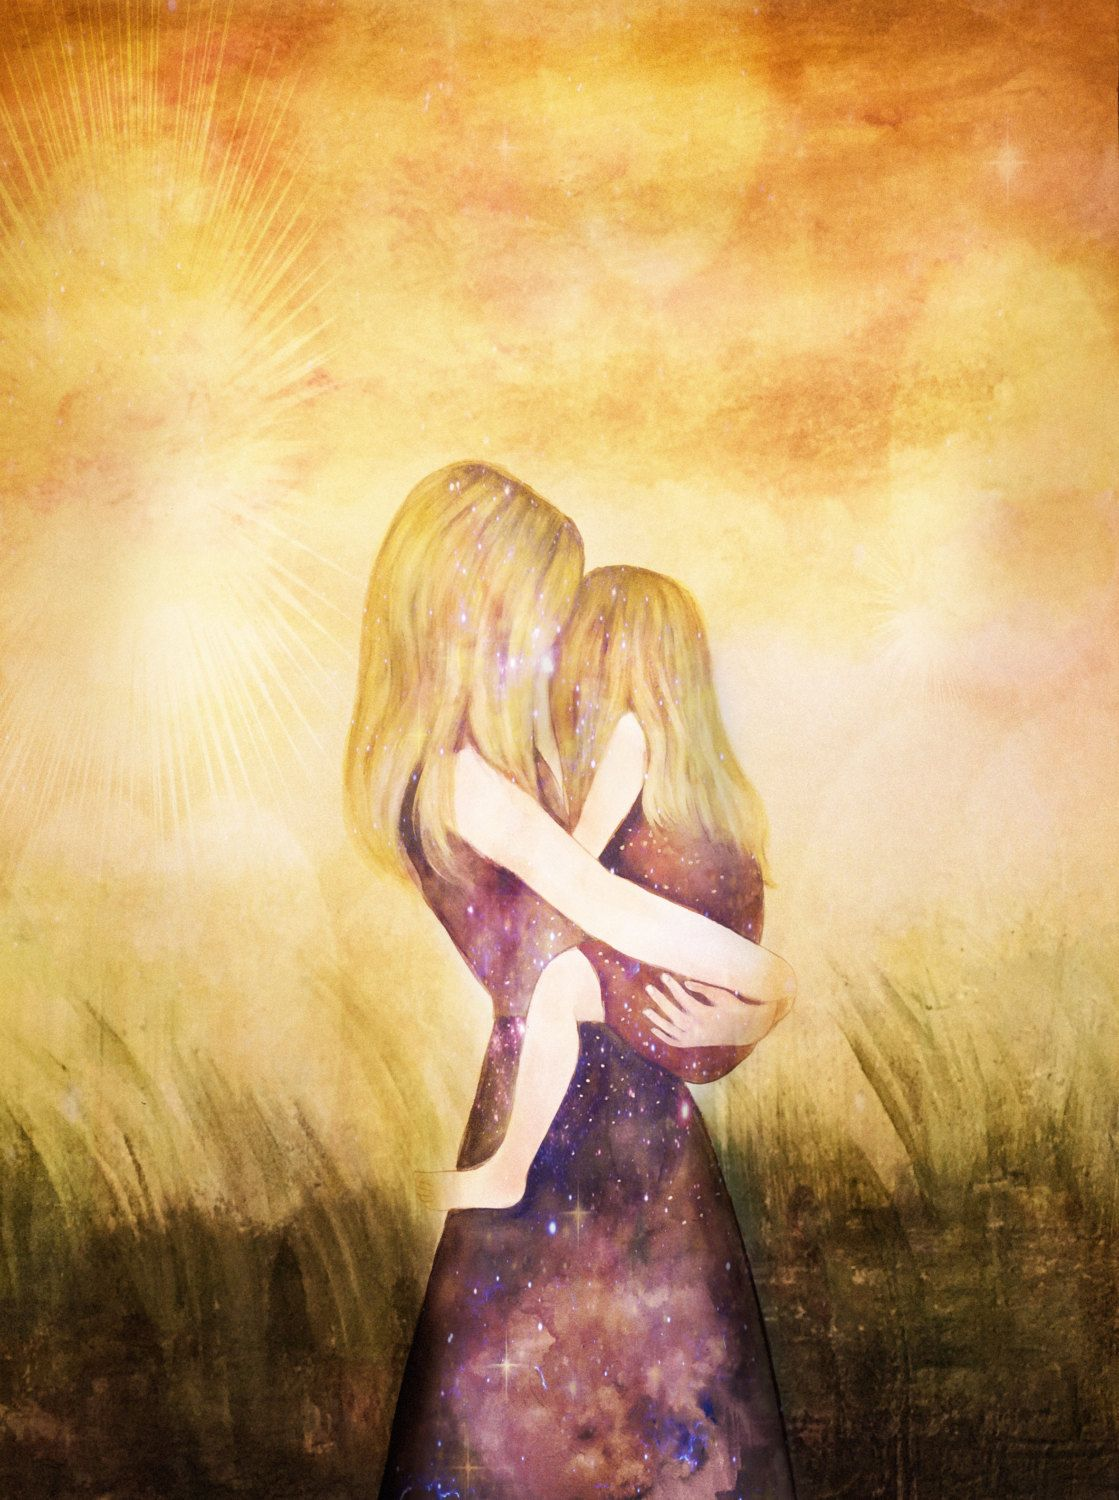 Mother and daughter their world blonde art print gift idea mothers day by claudiatremblay on etsy